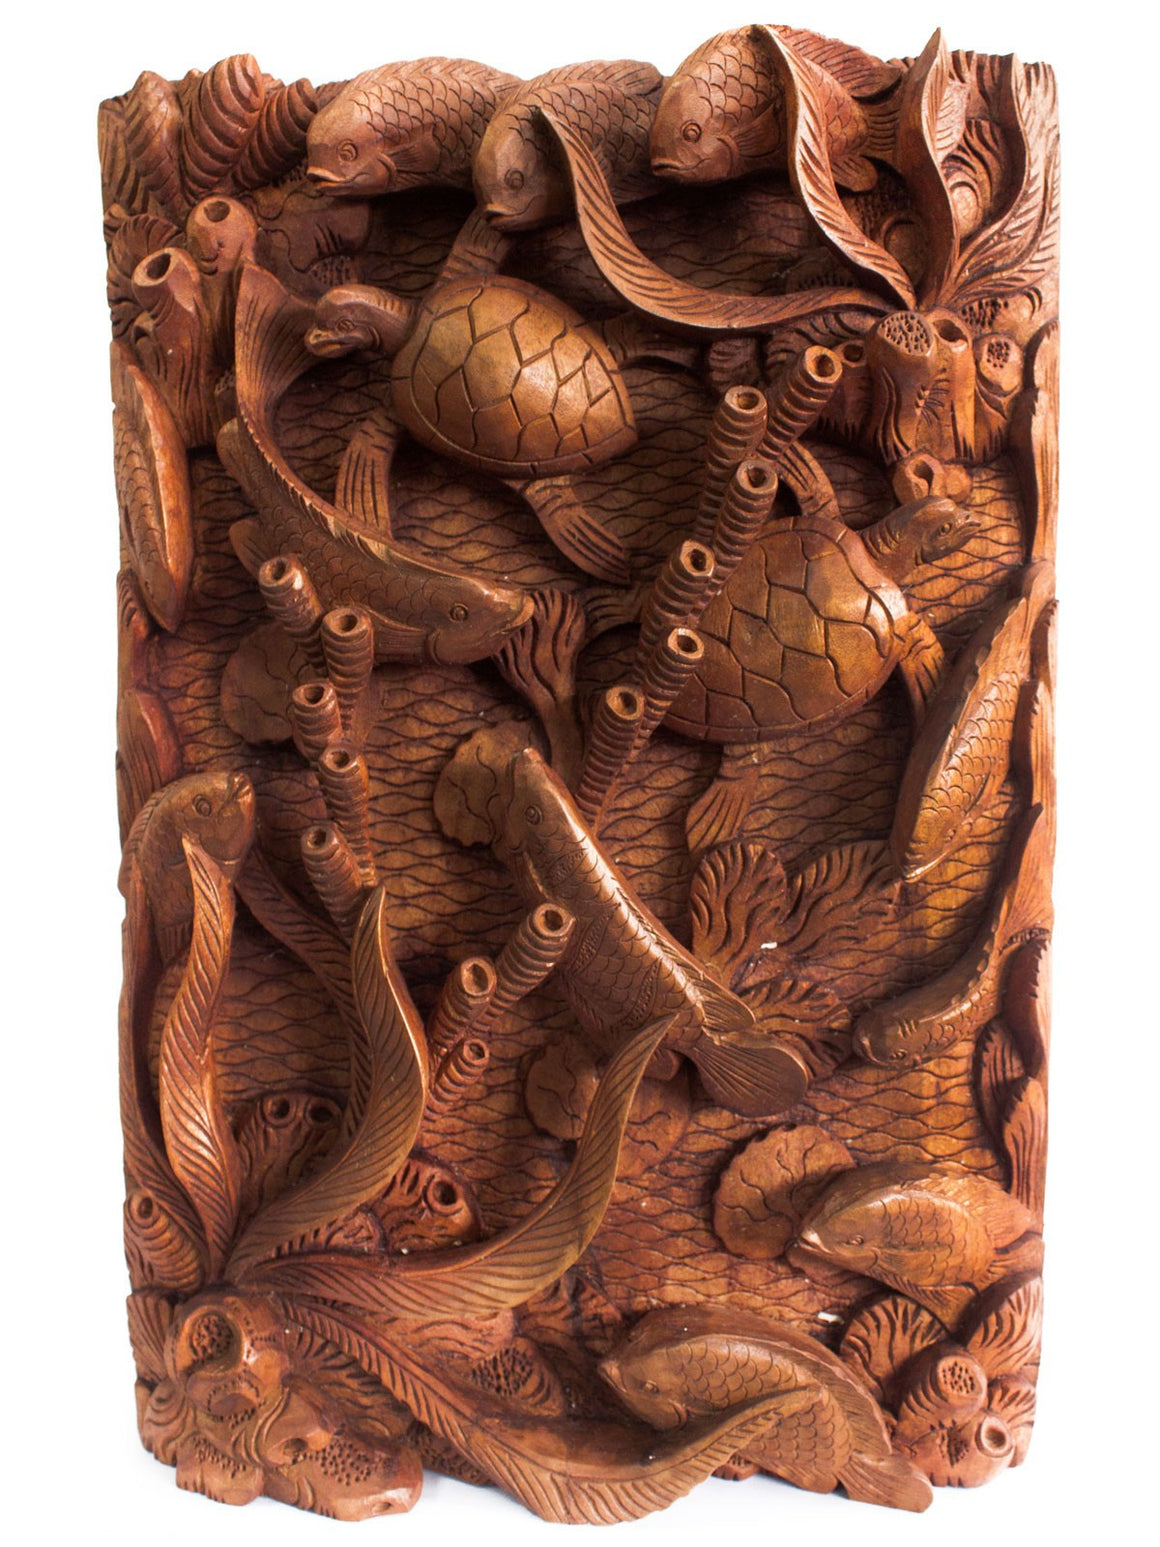 Artisan Hand Carved Fish & Turtles Wooden Wall Panel